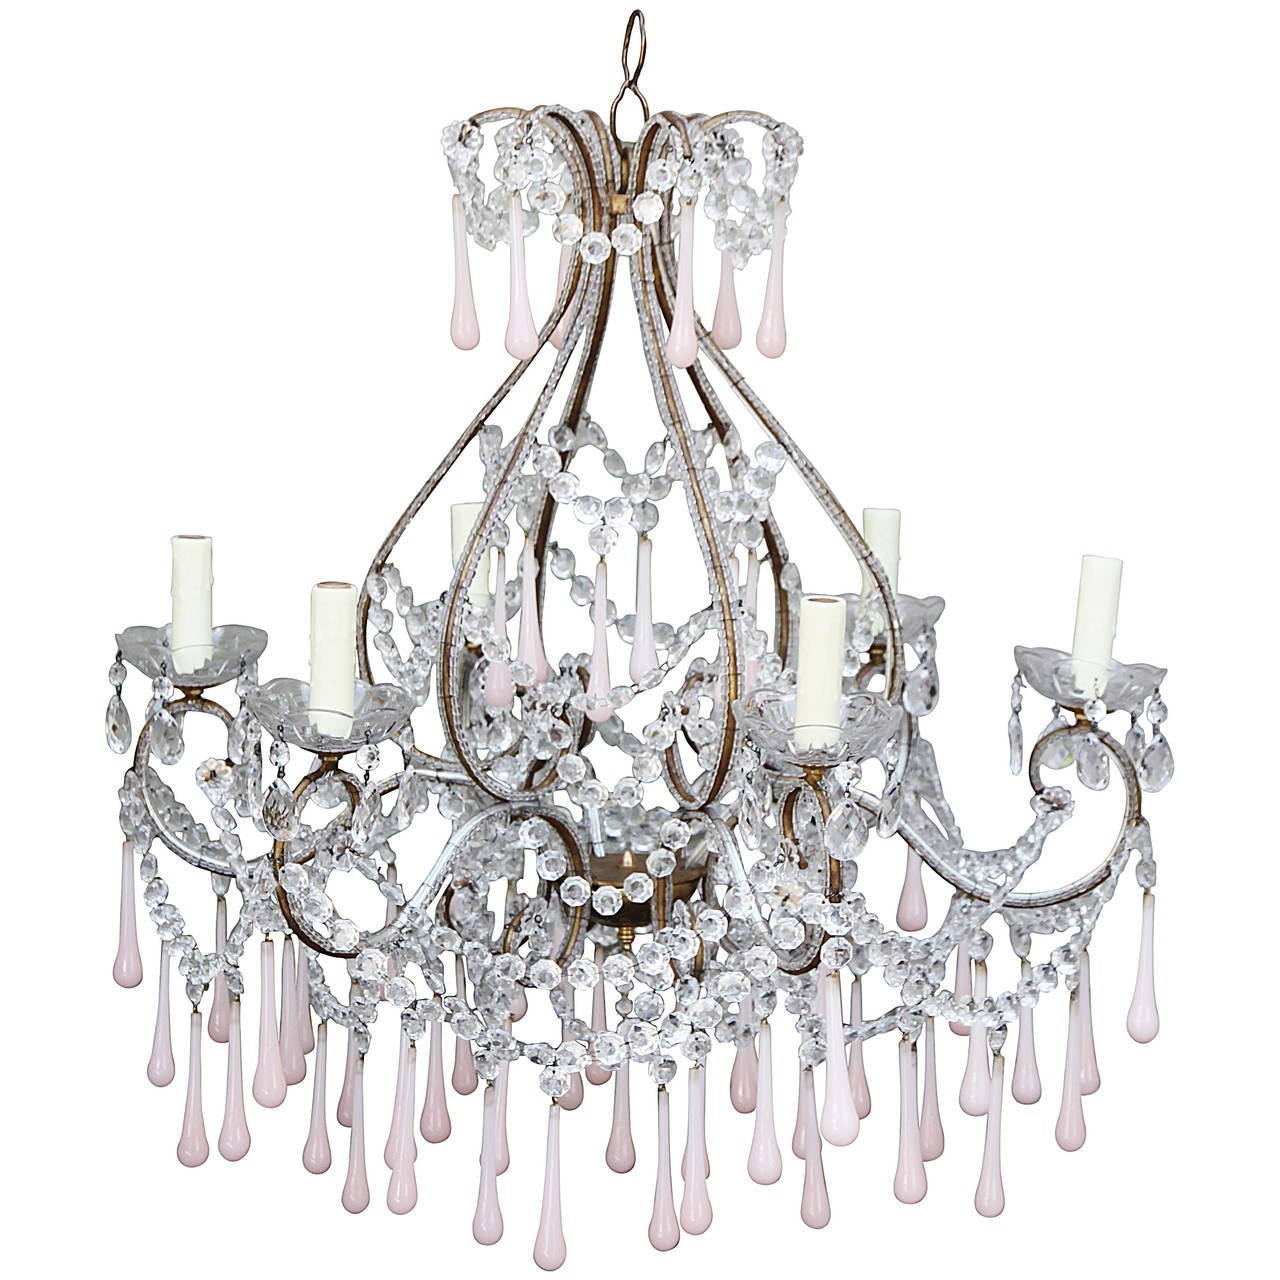 Pink opaline crystal beaded chandelier at 1stdibs pink opaline crystal beaded chandelier for sale aloadofball Choice Image